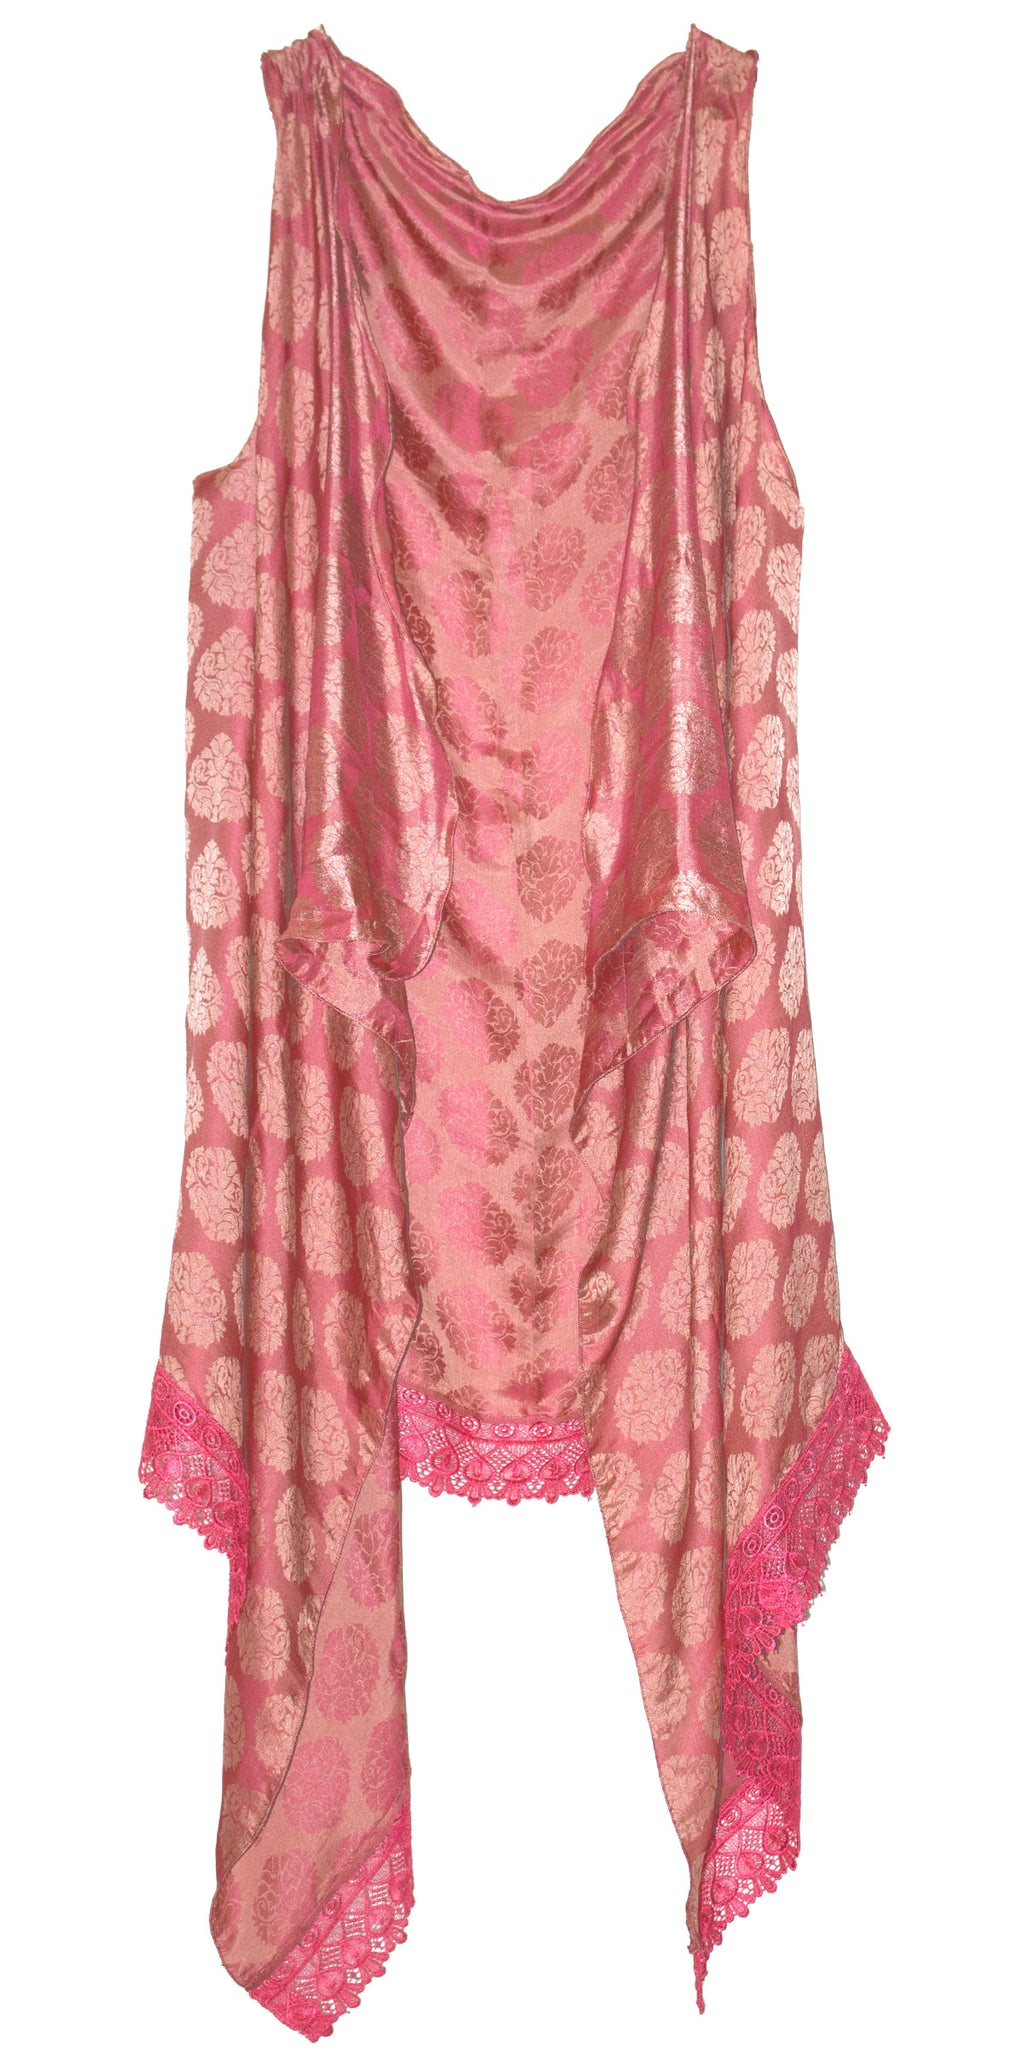 d19b6c30d73fce Hot-pink color soft & silky Kimono shrug/top,Shawl-dress with Lace ...